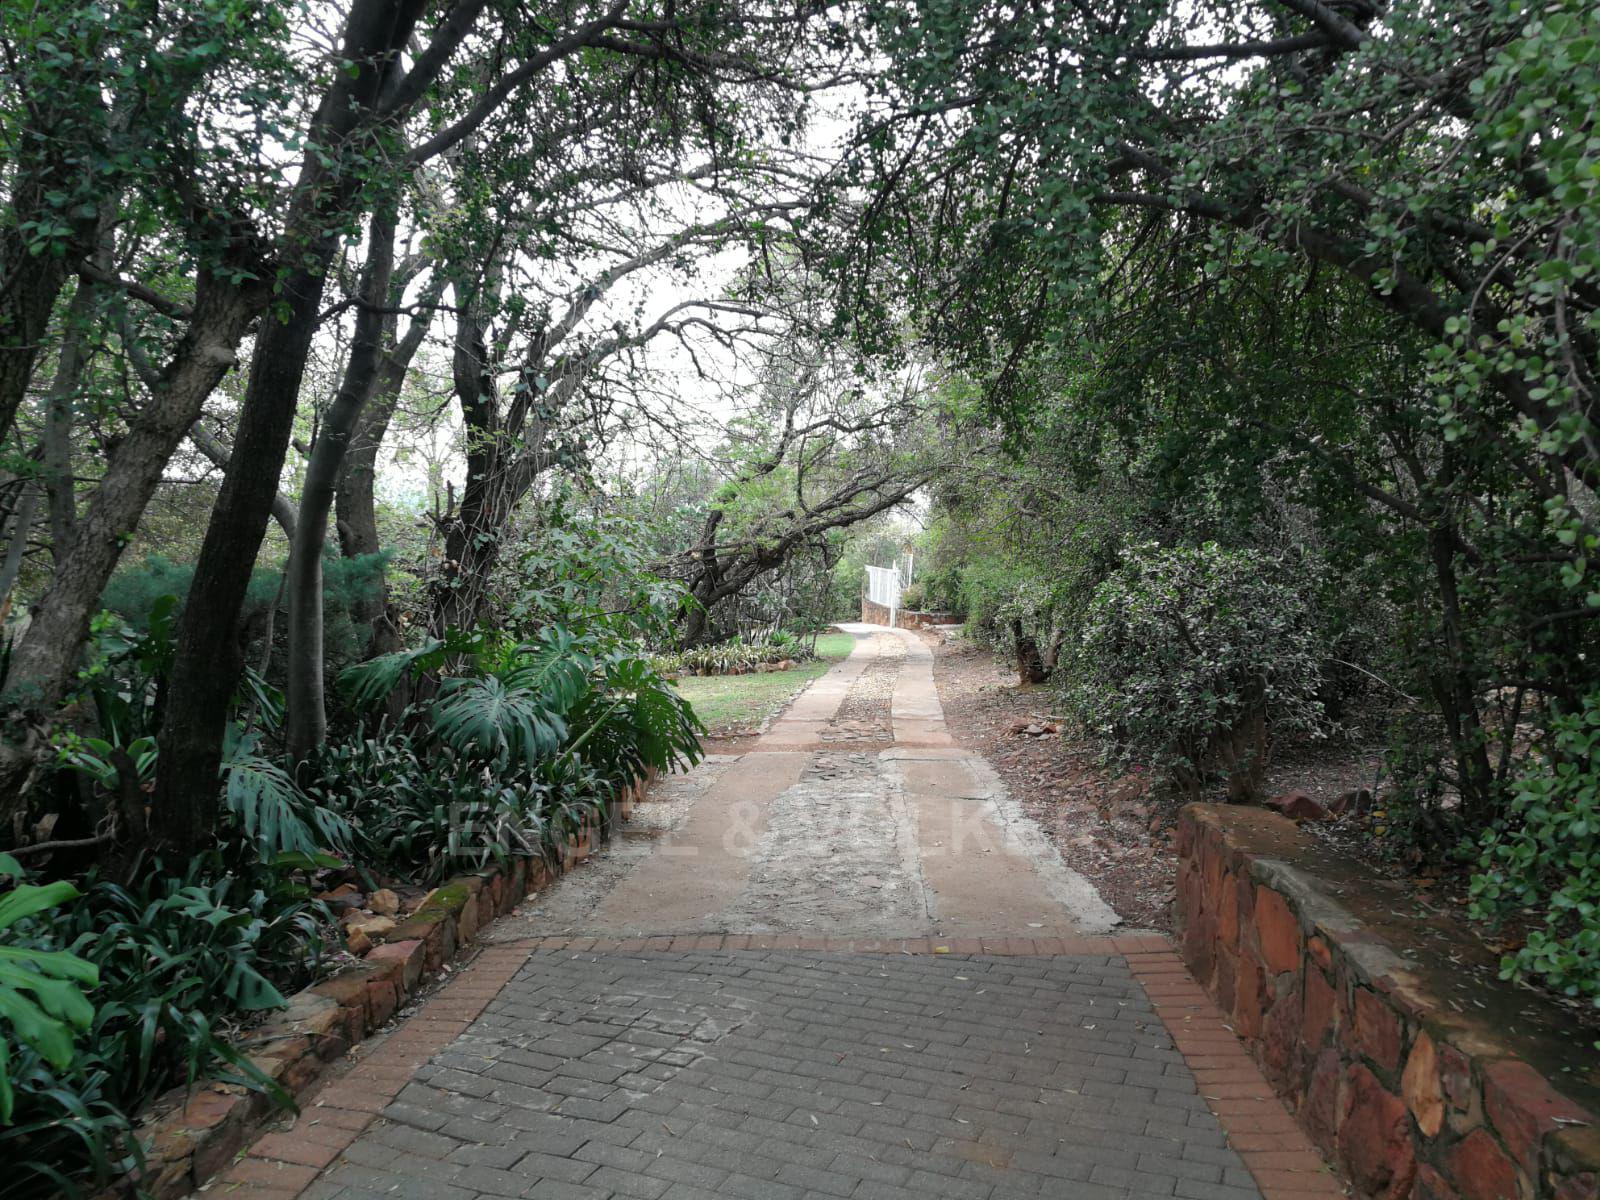 Land in Hartbeespoort Dam Area - Inviting driveway into property